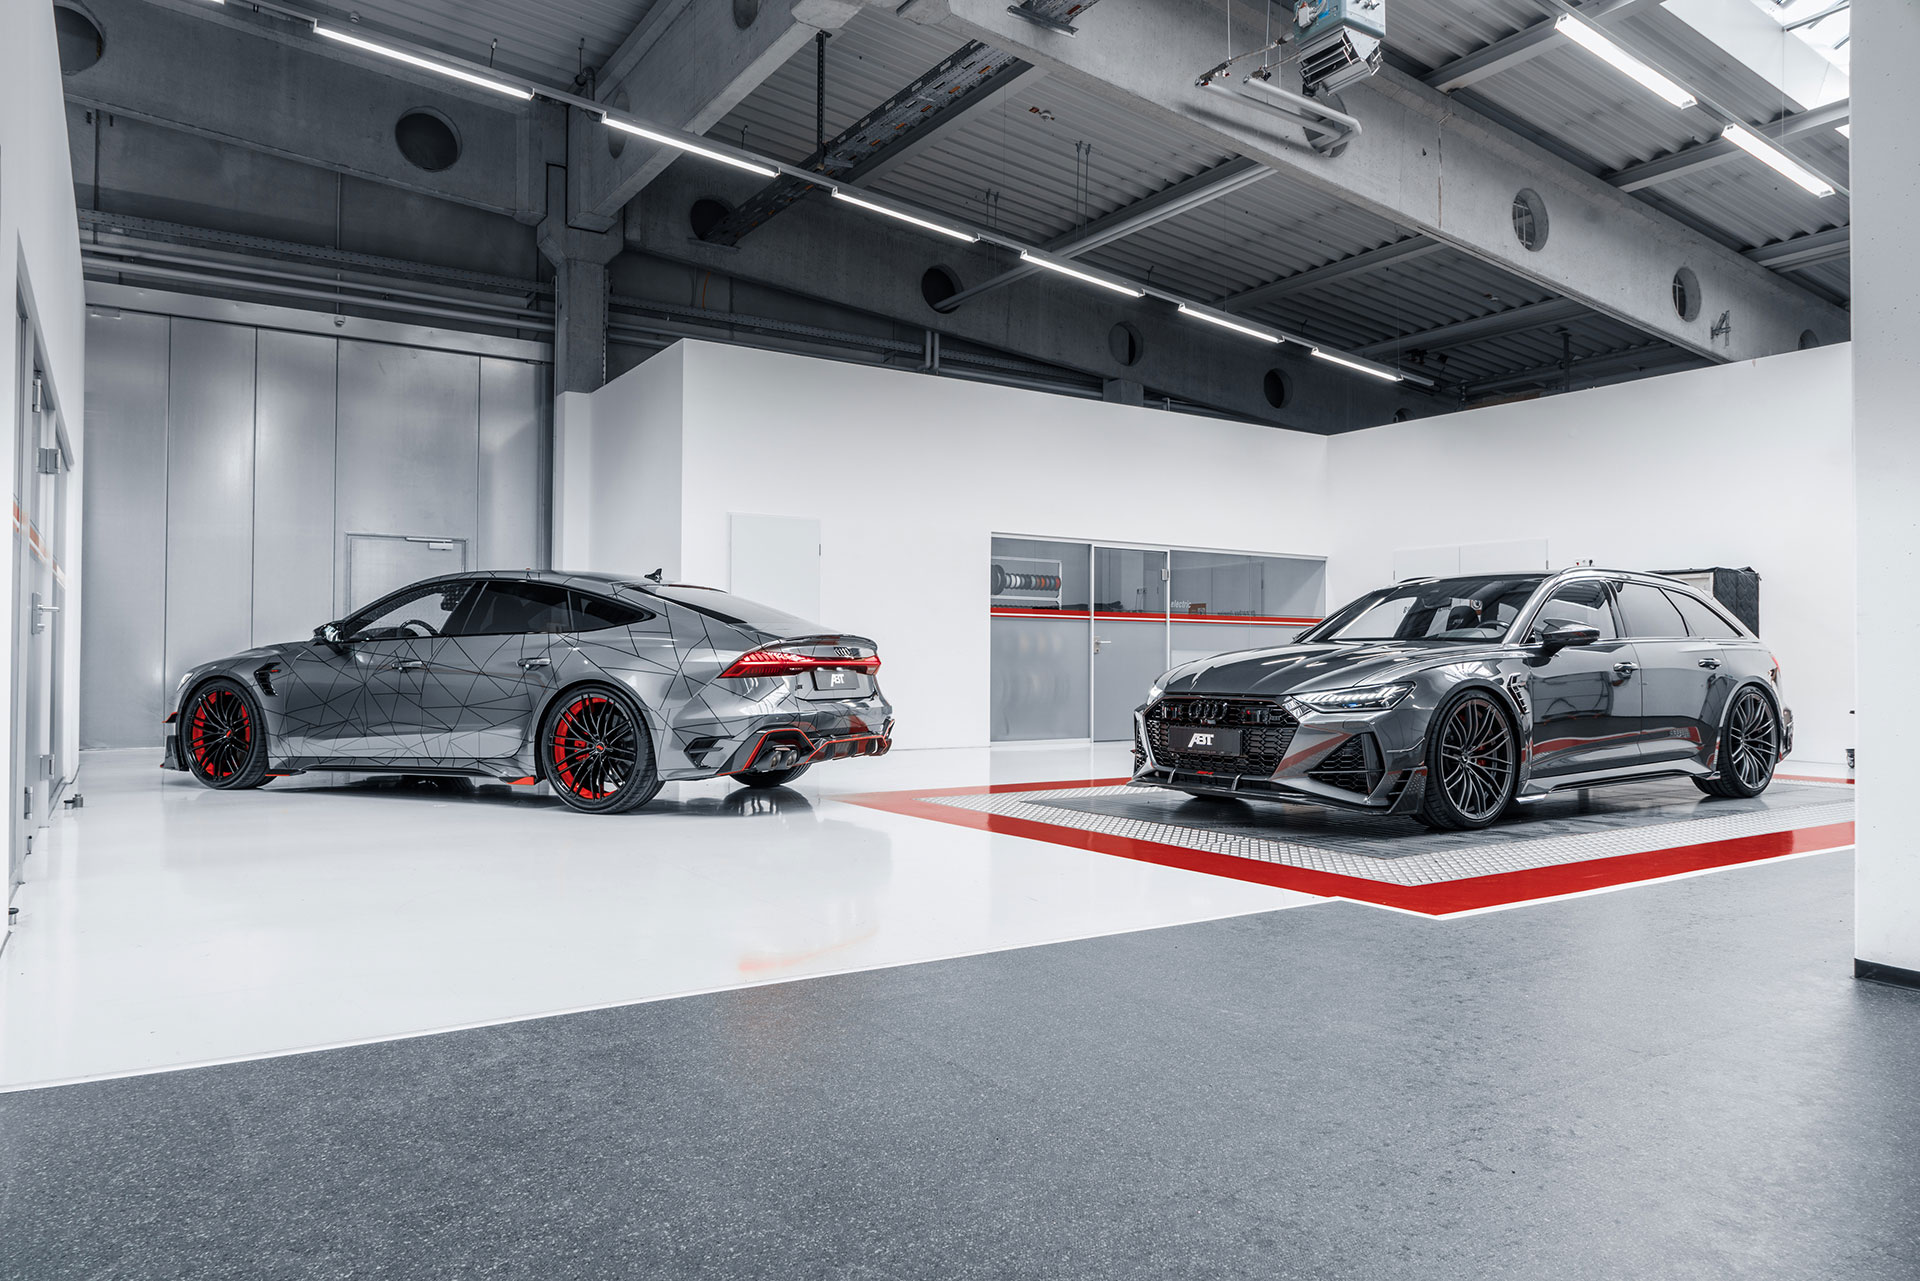 2020, audi, abt, rs6, rs6-r